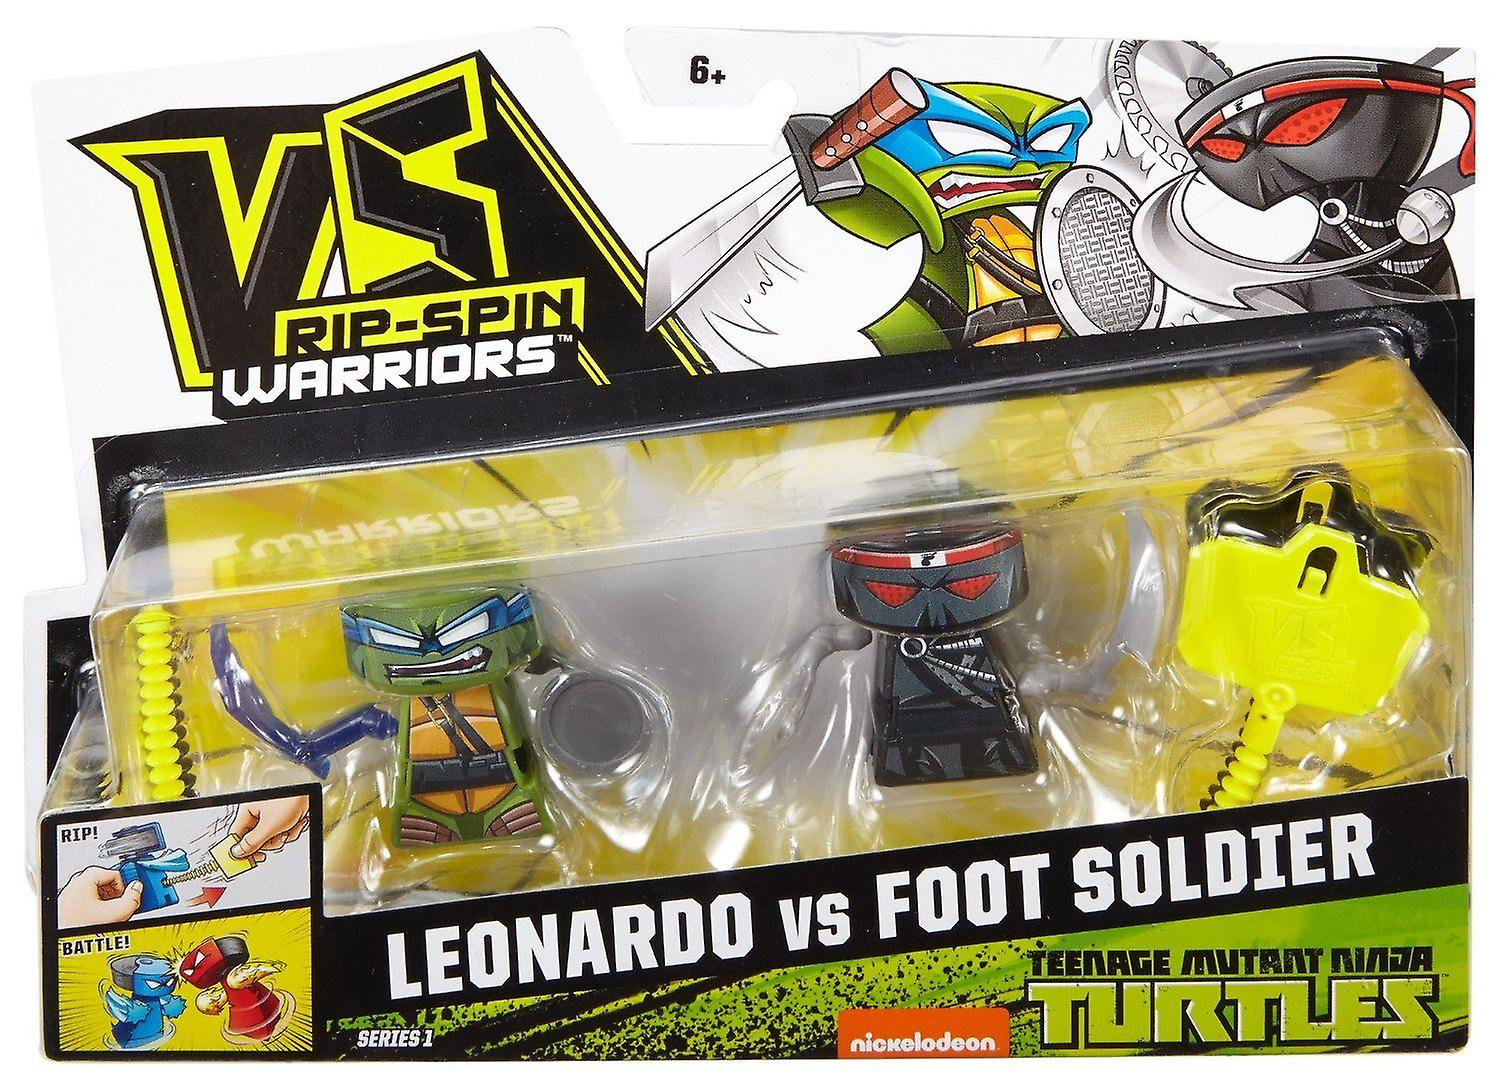 Vs Rip-spin Warriors Teenage Mutant Ninja Turtles Leonardo Vs Foot Soldier